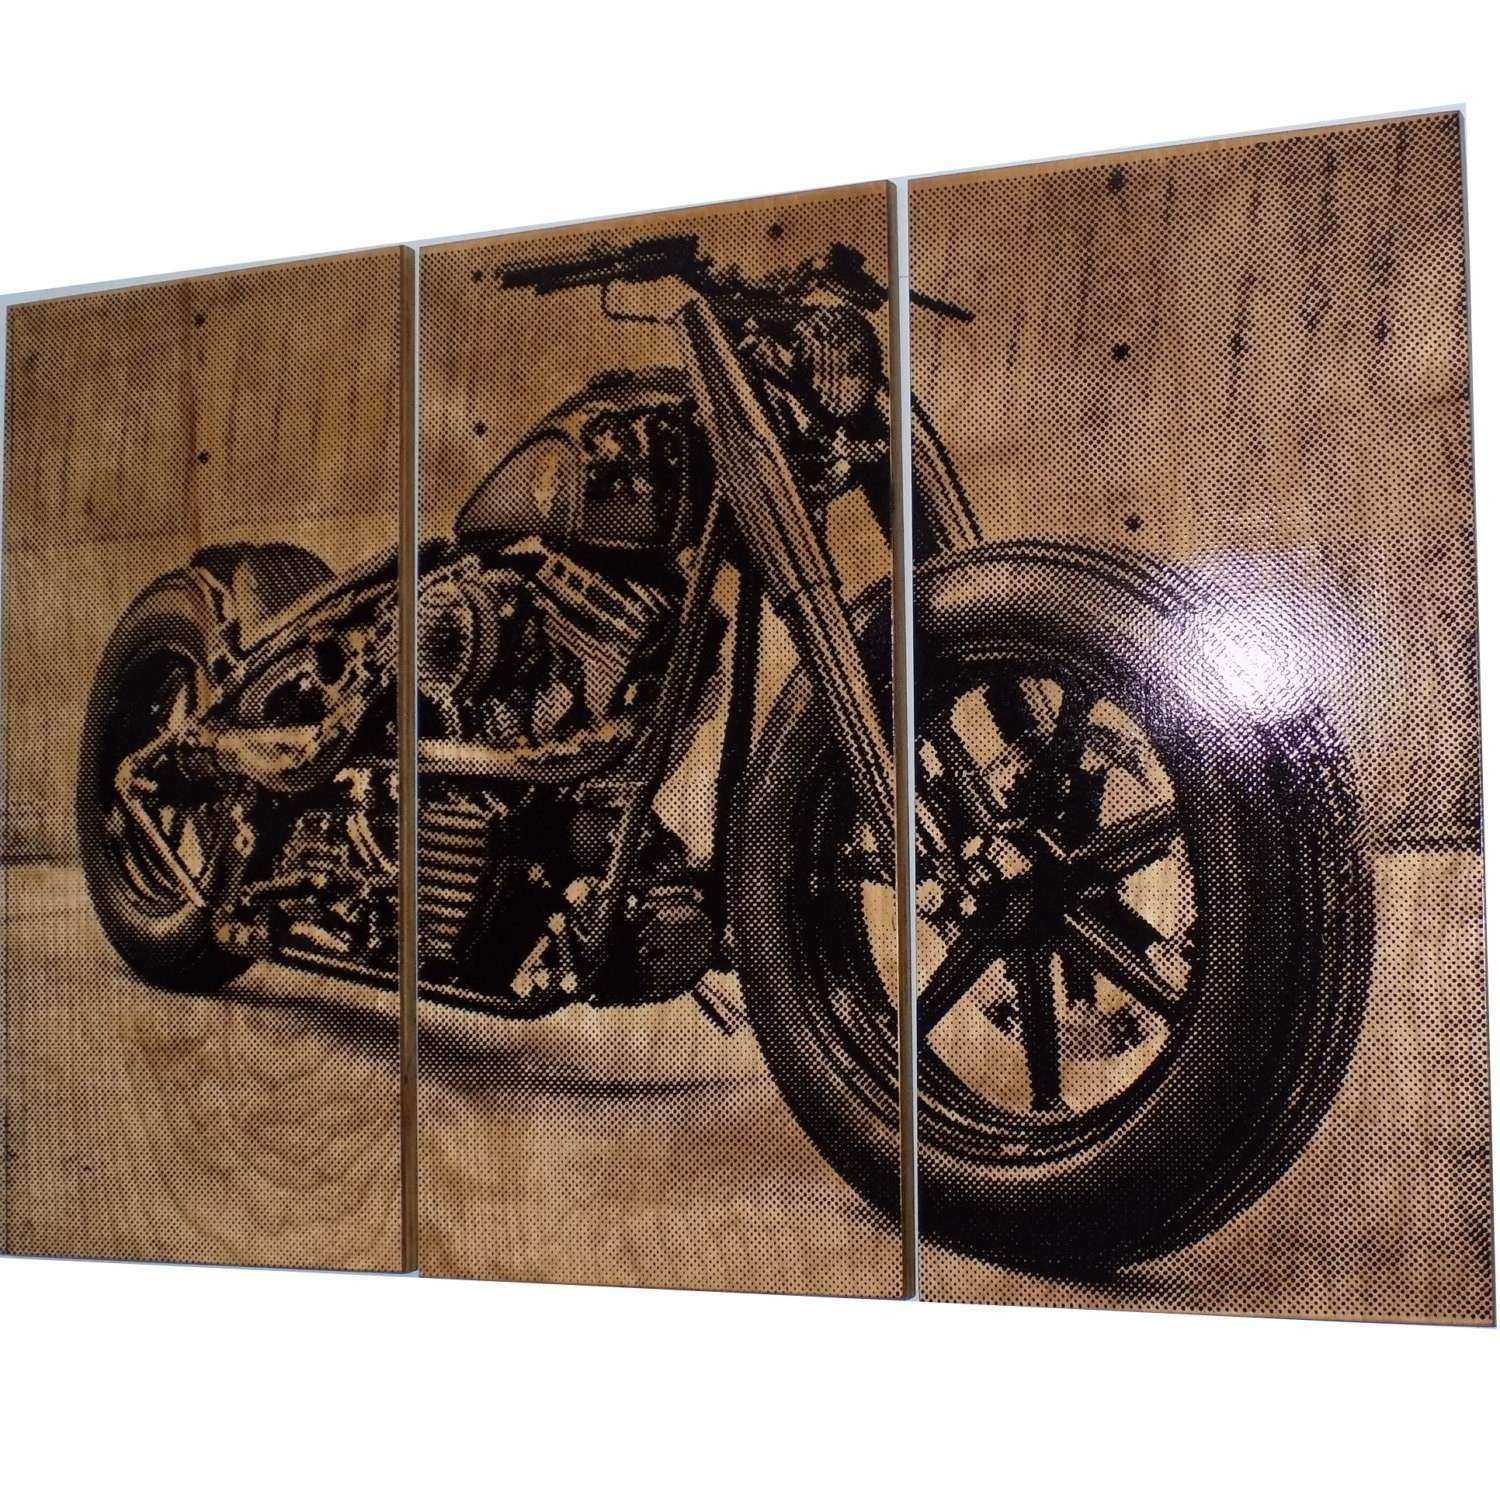 Harley Davidson Prints Wall Art Fresh Harley Davidson Fatboy Softail Regarding Most Recently Released Harley Davidson Wall Art (Gallery 9 of 20)